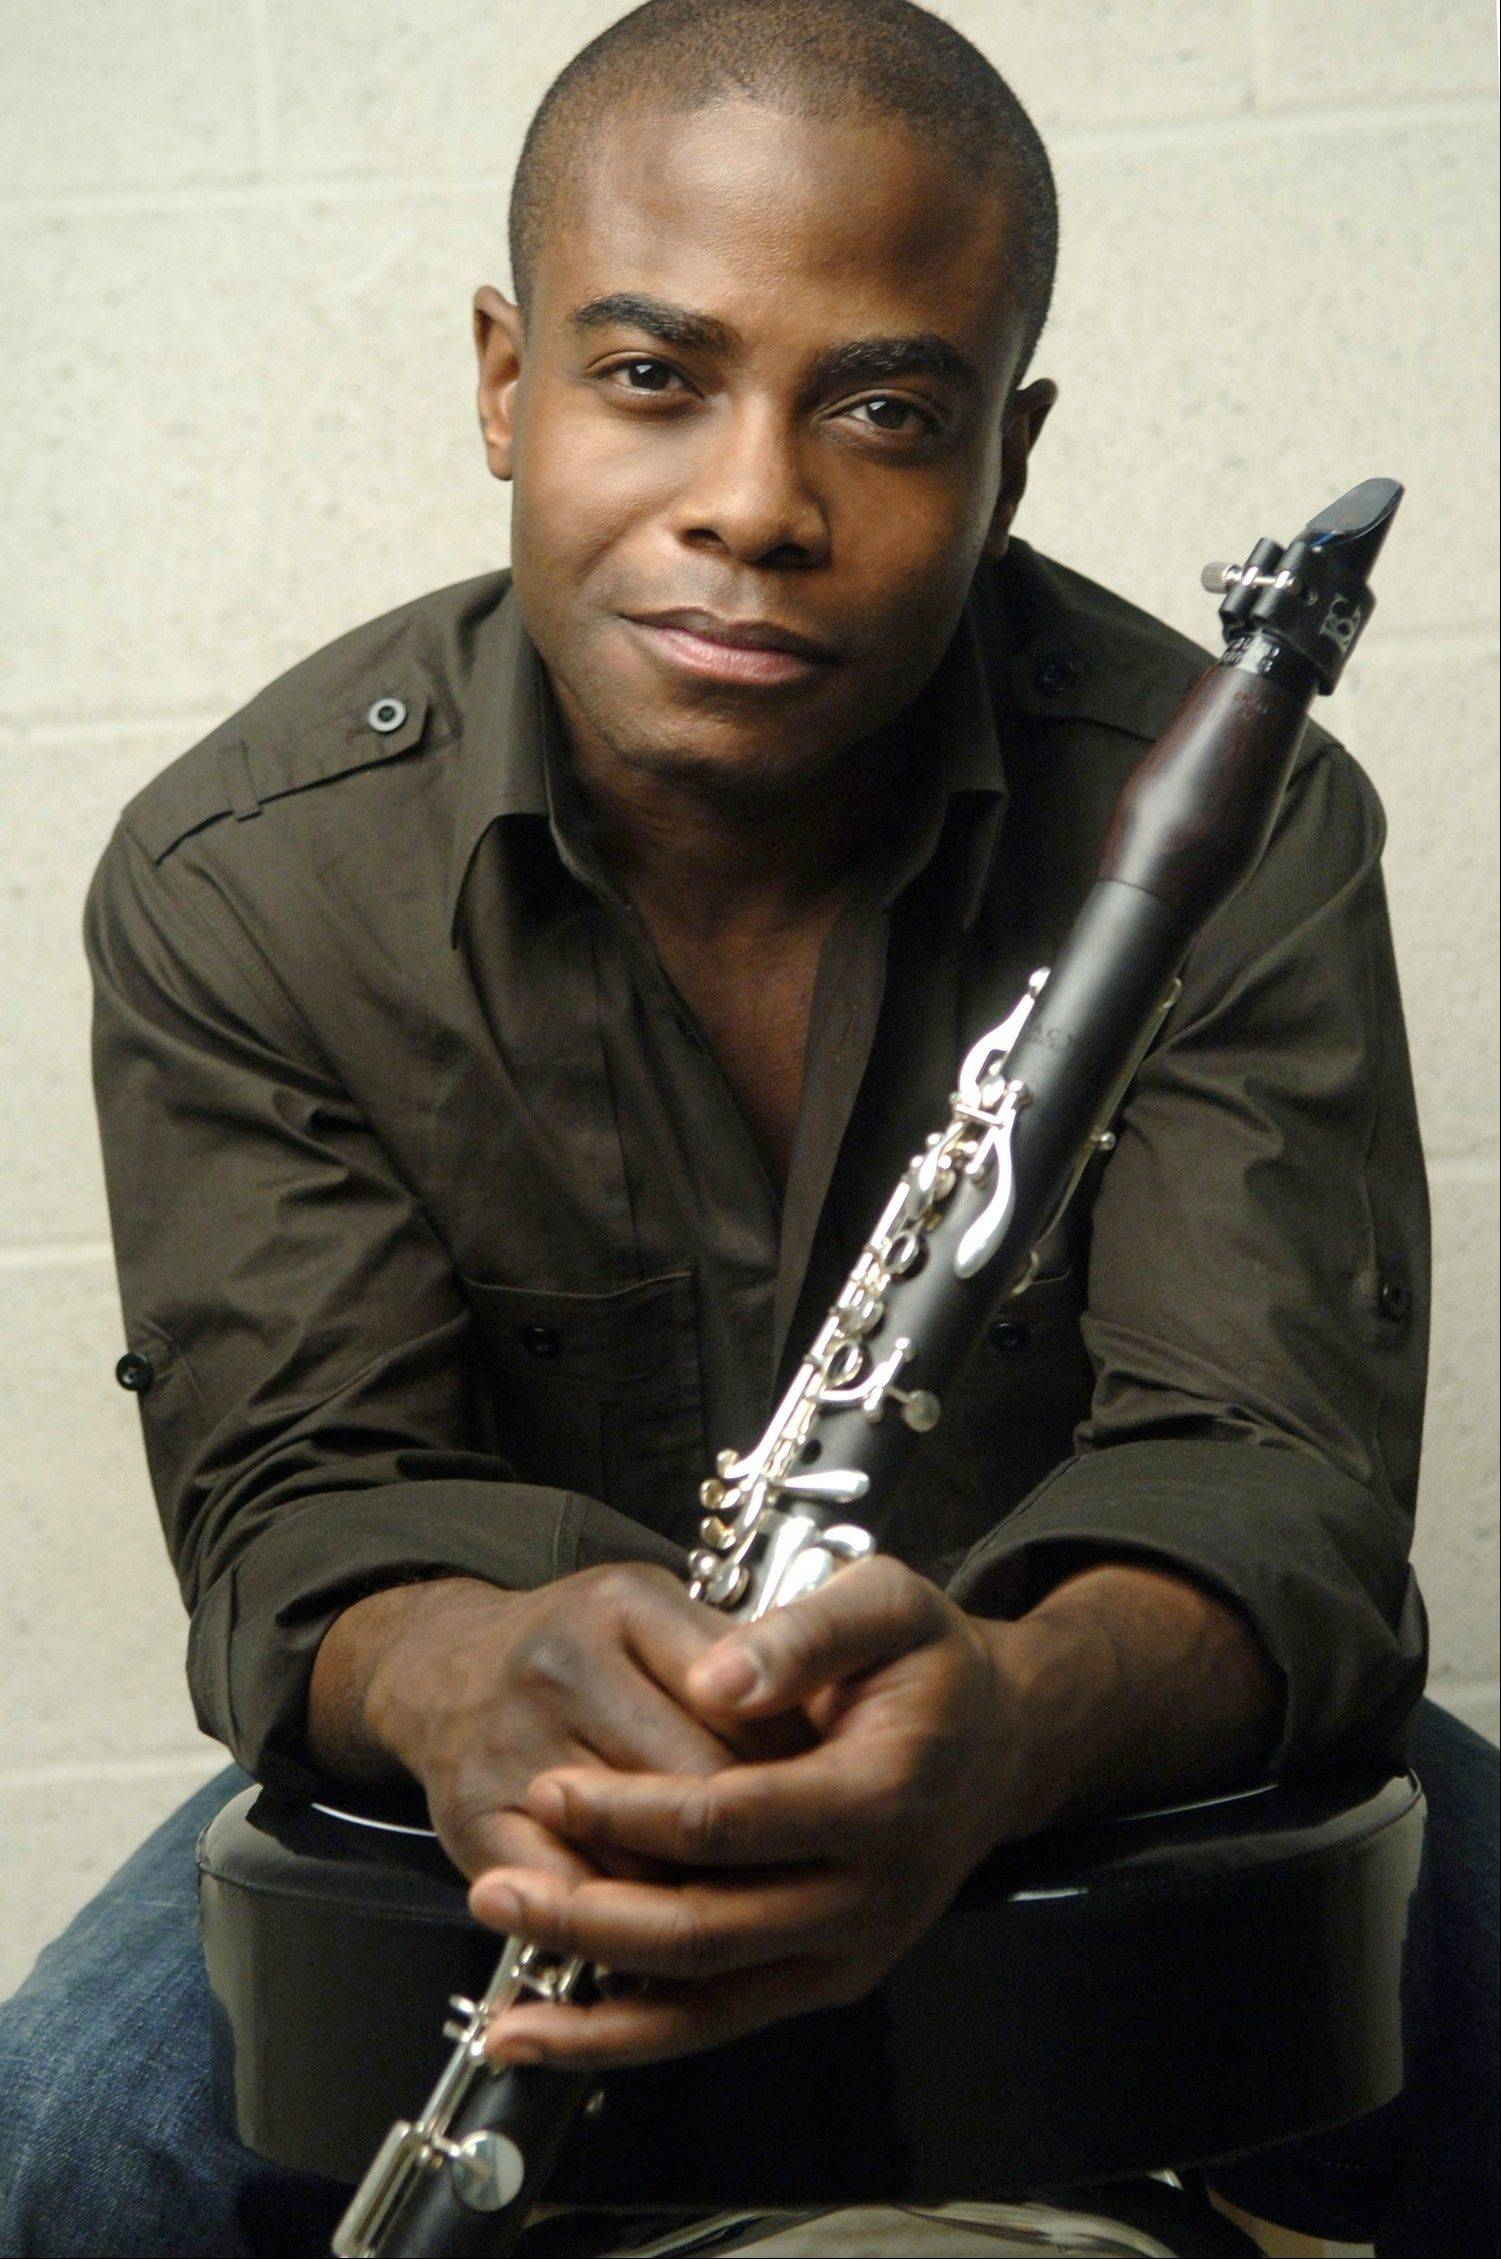 Anthony McGill, principal clarinetist of the Metropolitan Opera, is a guest artist with the Chicago Sinfonietta Annual Tribute to Dr. Martin Luther King Jr. in Chicago and Naperville.